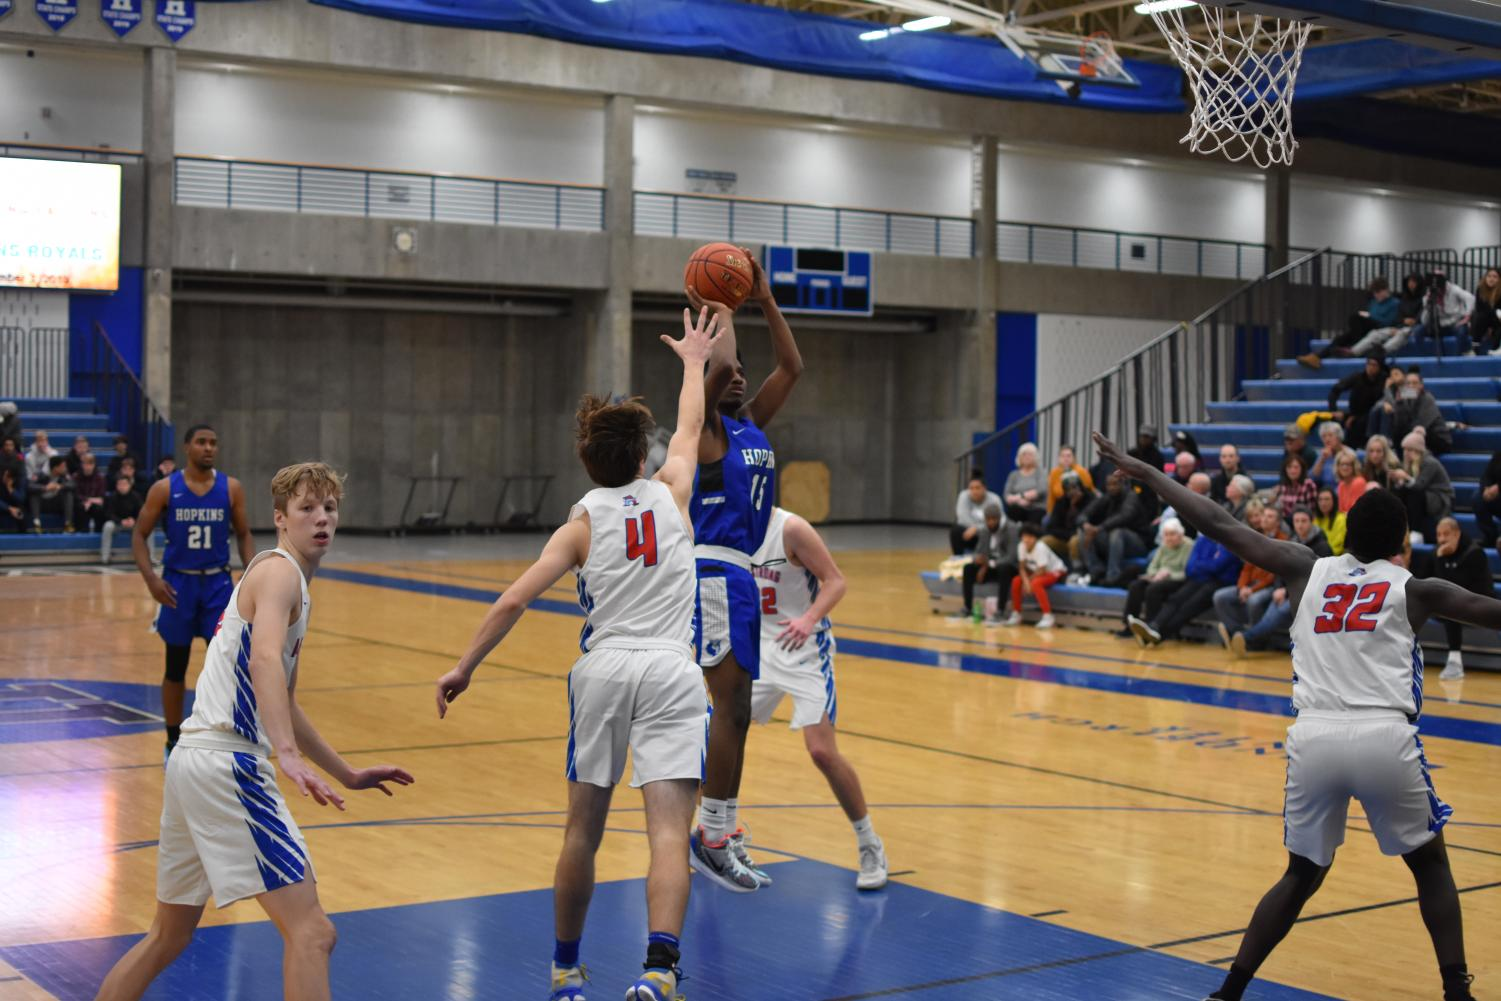 Cornell Richardson, senior, shoots the ball over and Armstrong player. Richardson and the Royals won this game 79-56.